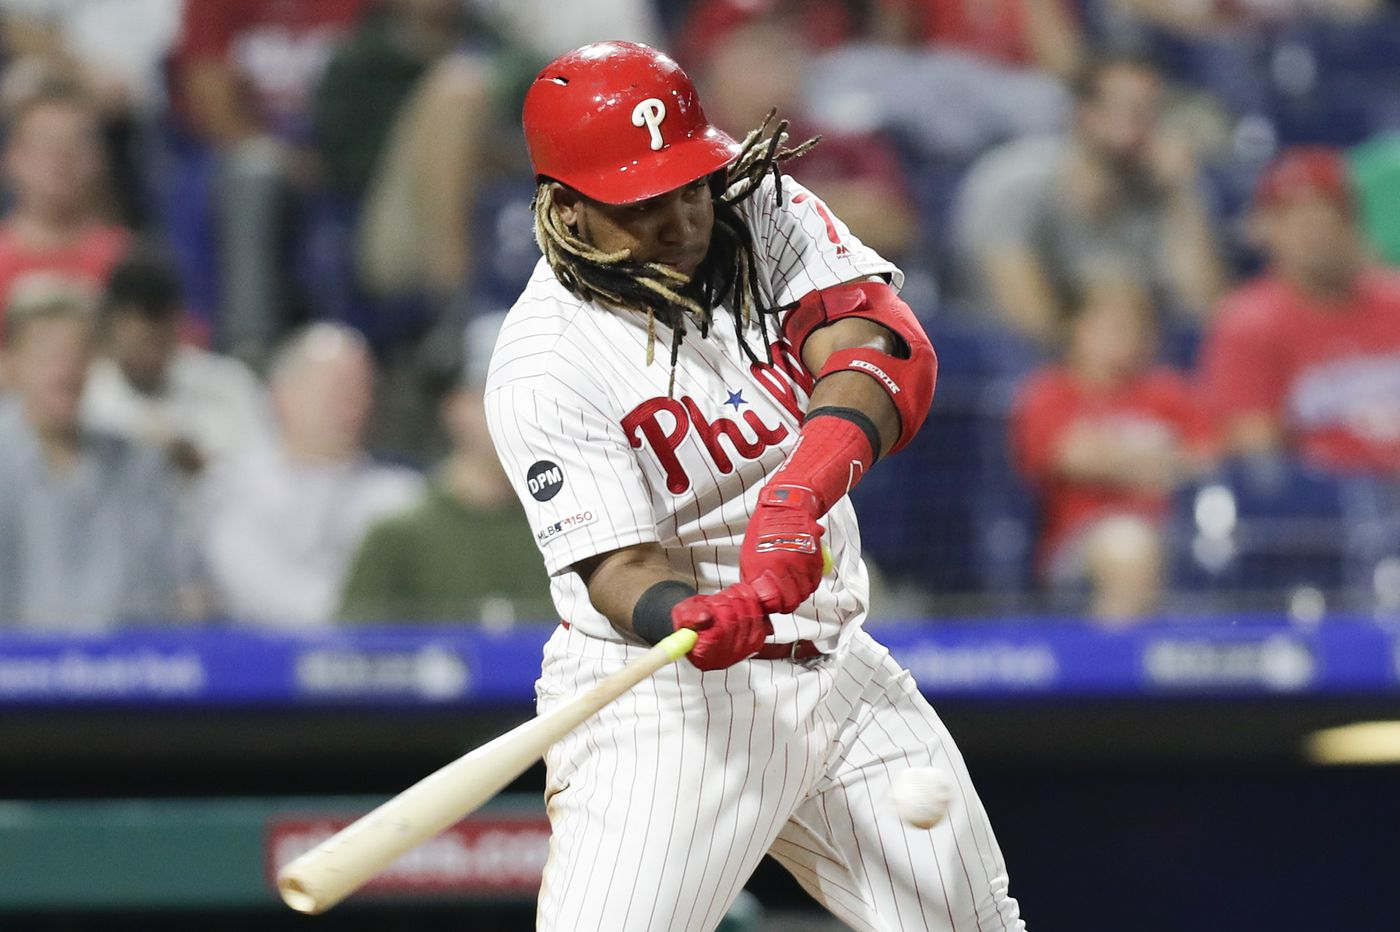 Maikel Franco doesn't start either game of doubleheader for Phillies